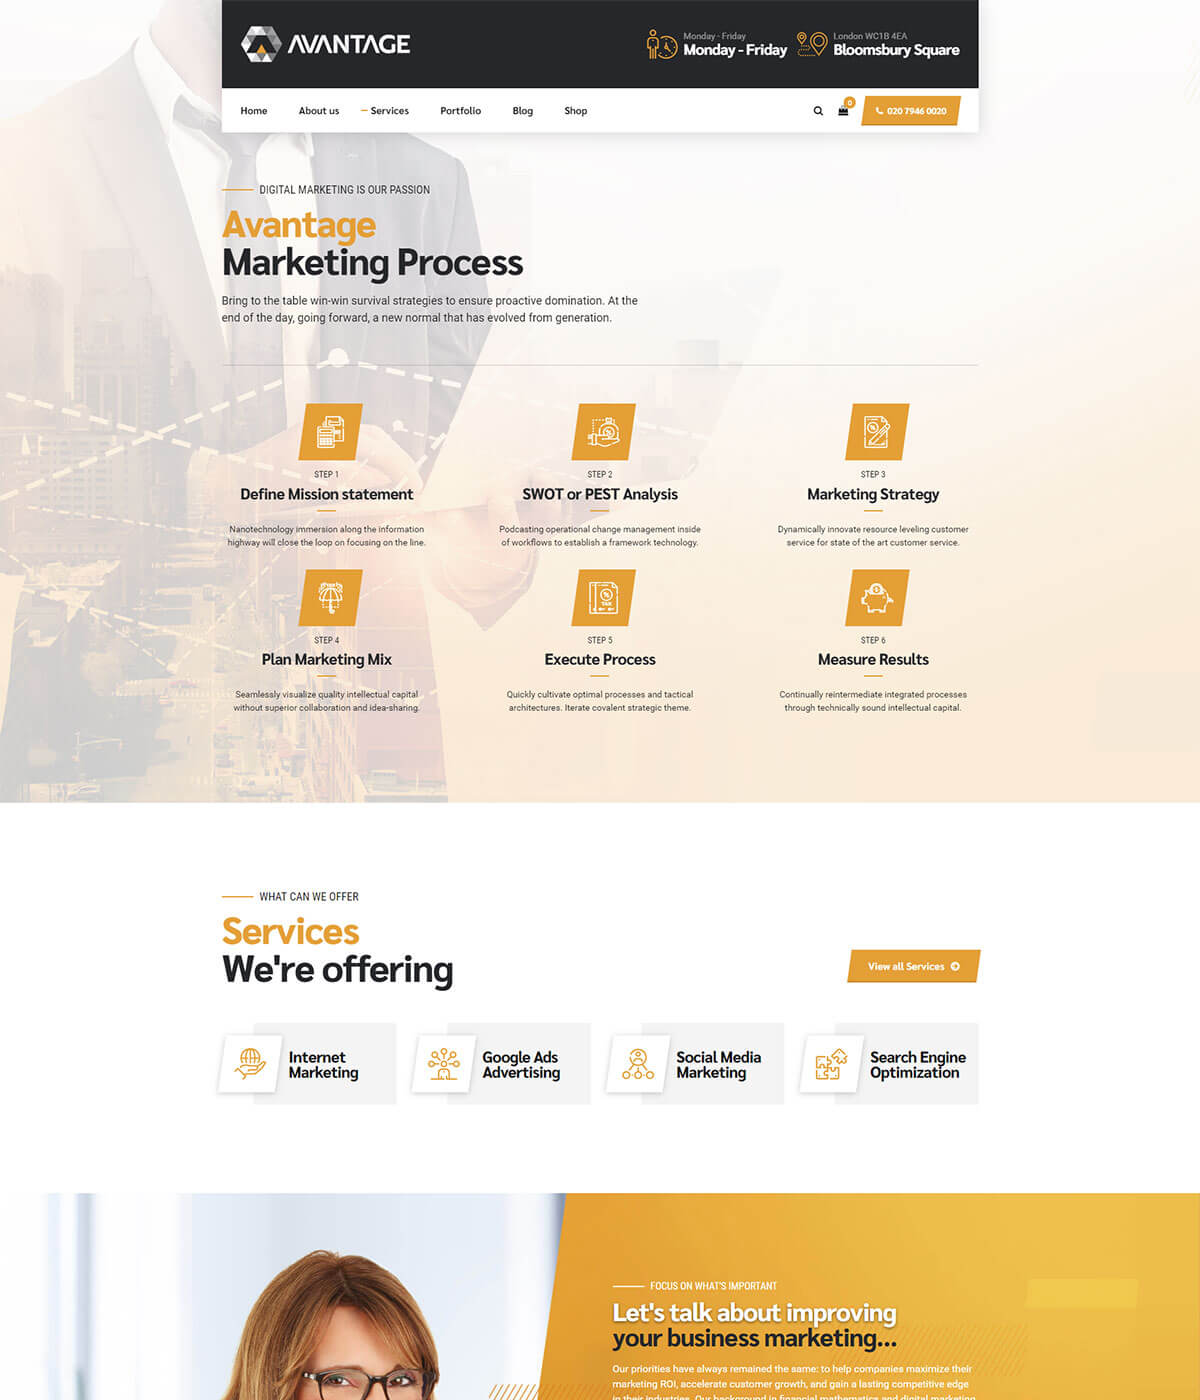 http://avantage.bold-themes.com/wp-content/uploads/2019/05/marketing-08-process.jpg